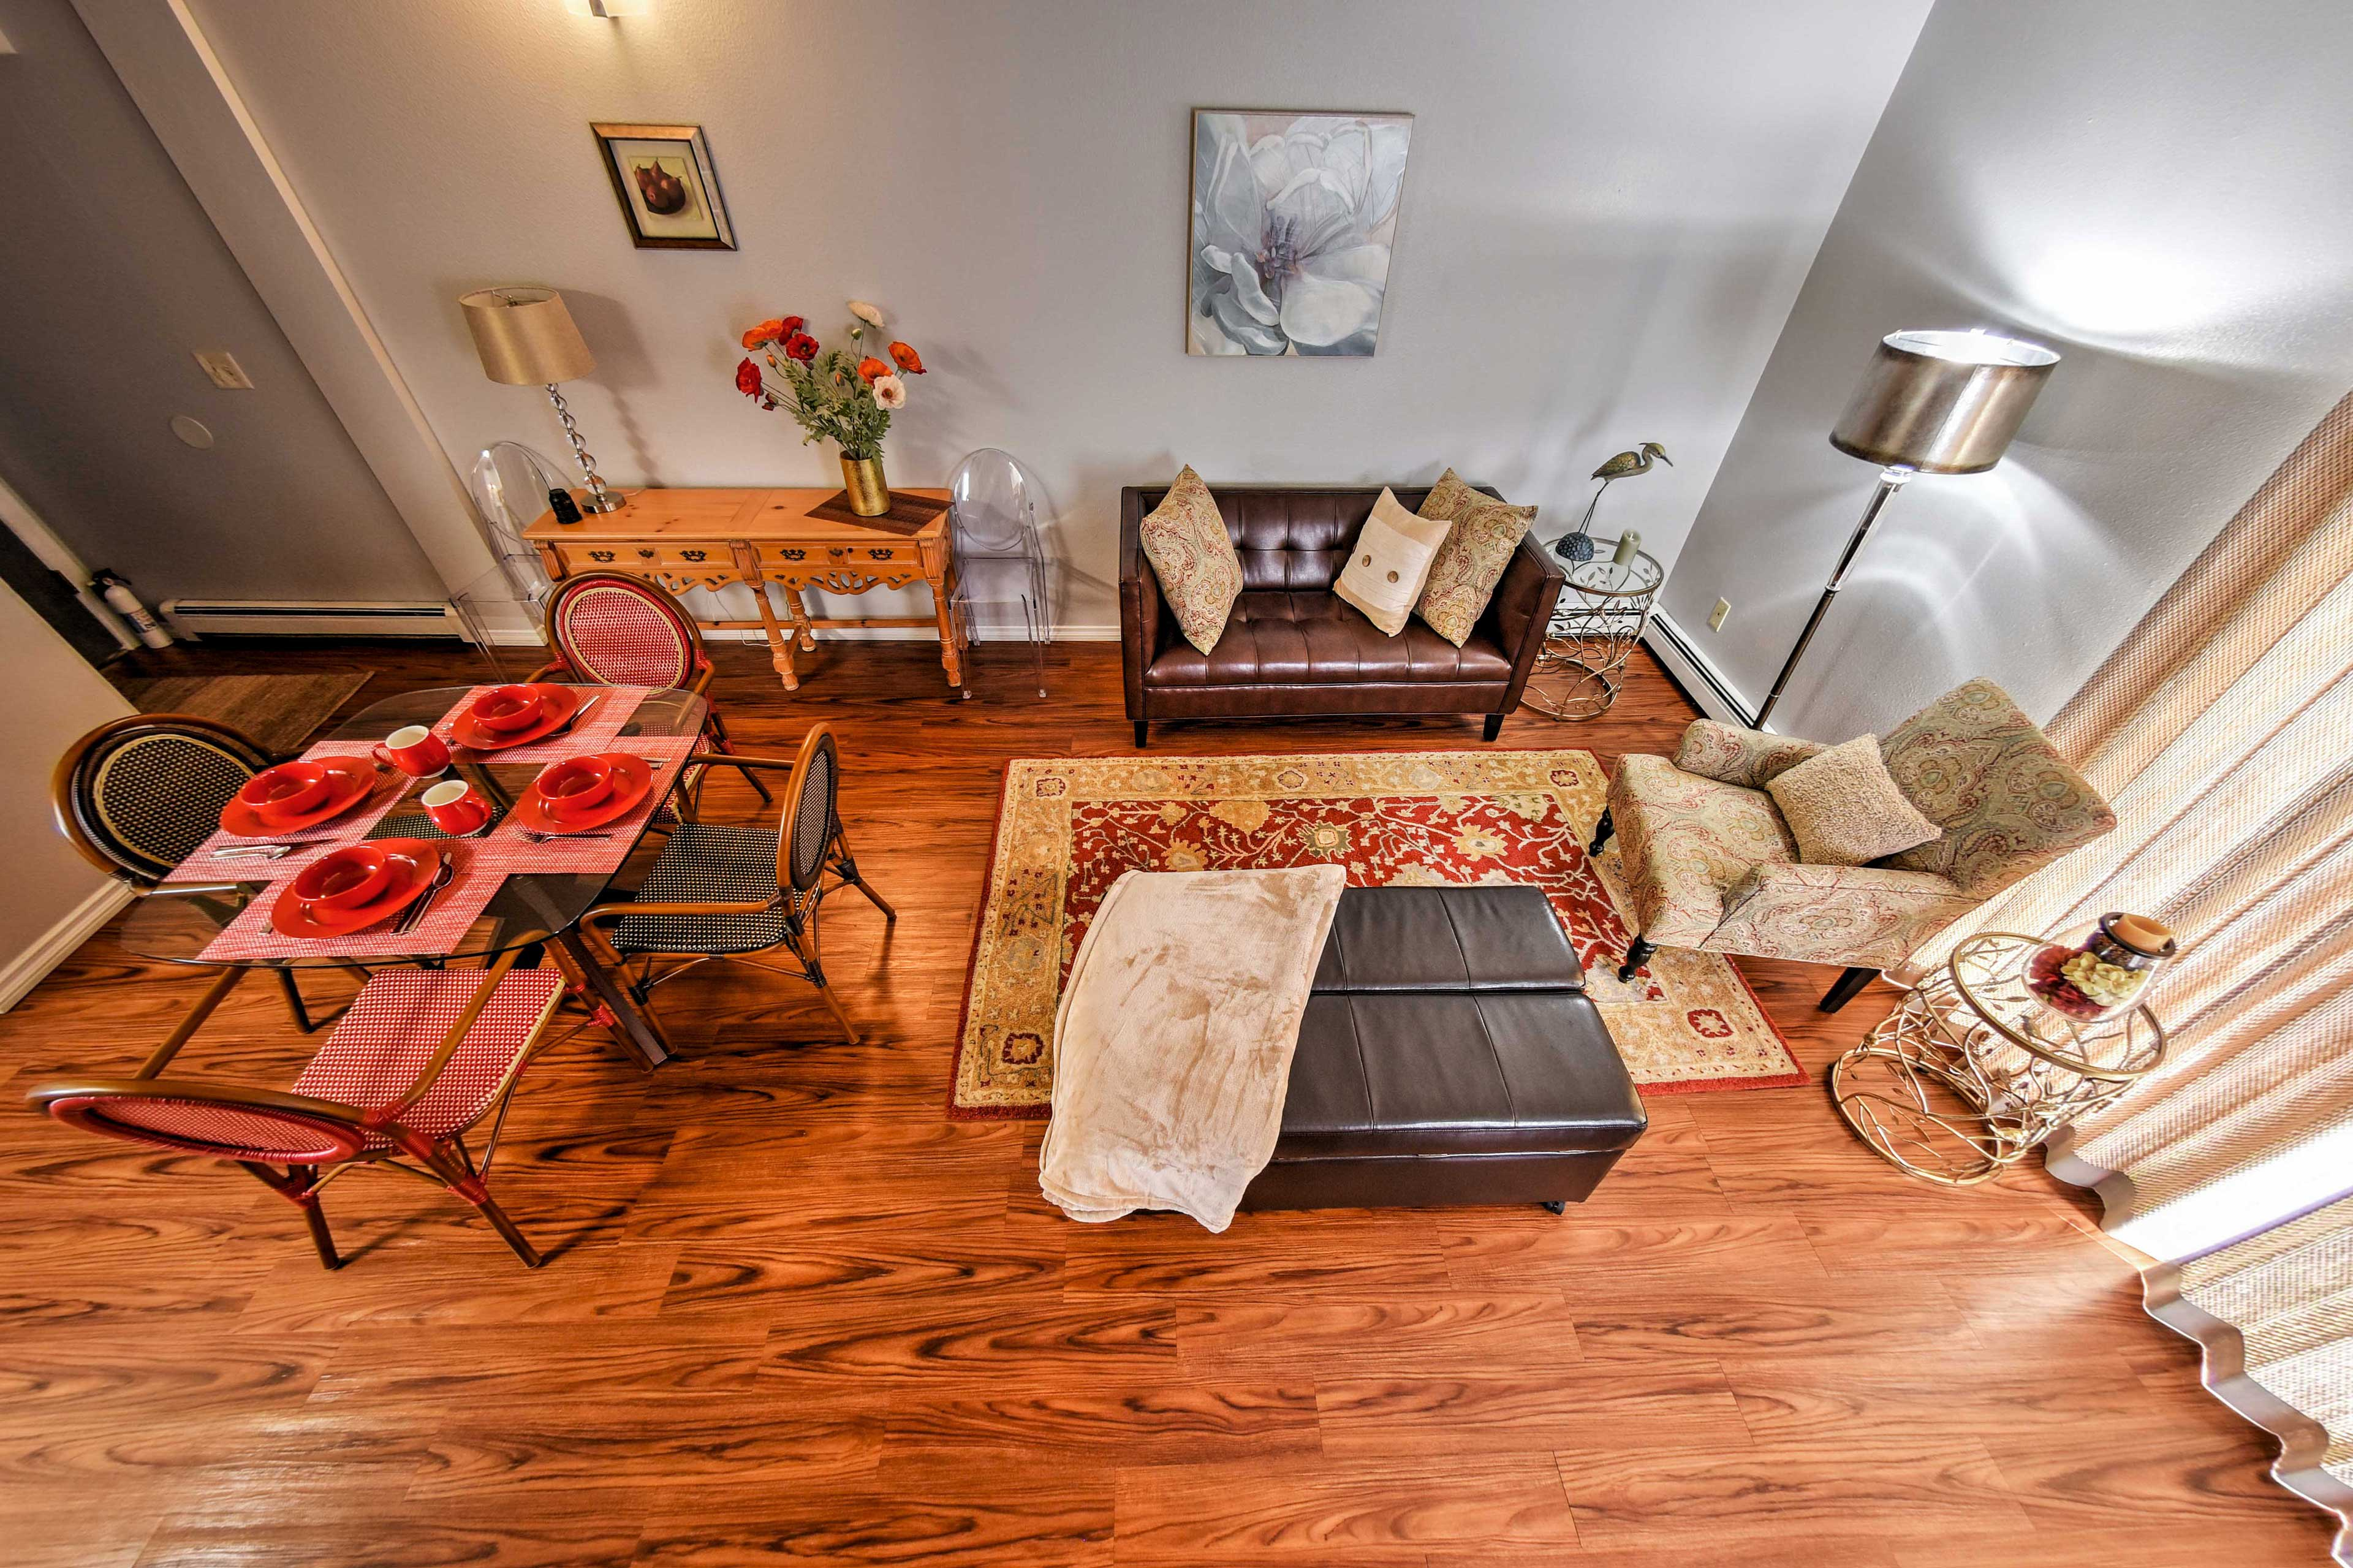 The open-concept floorplan provides a great space to relax during your vacation.